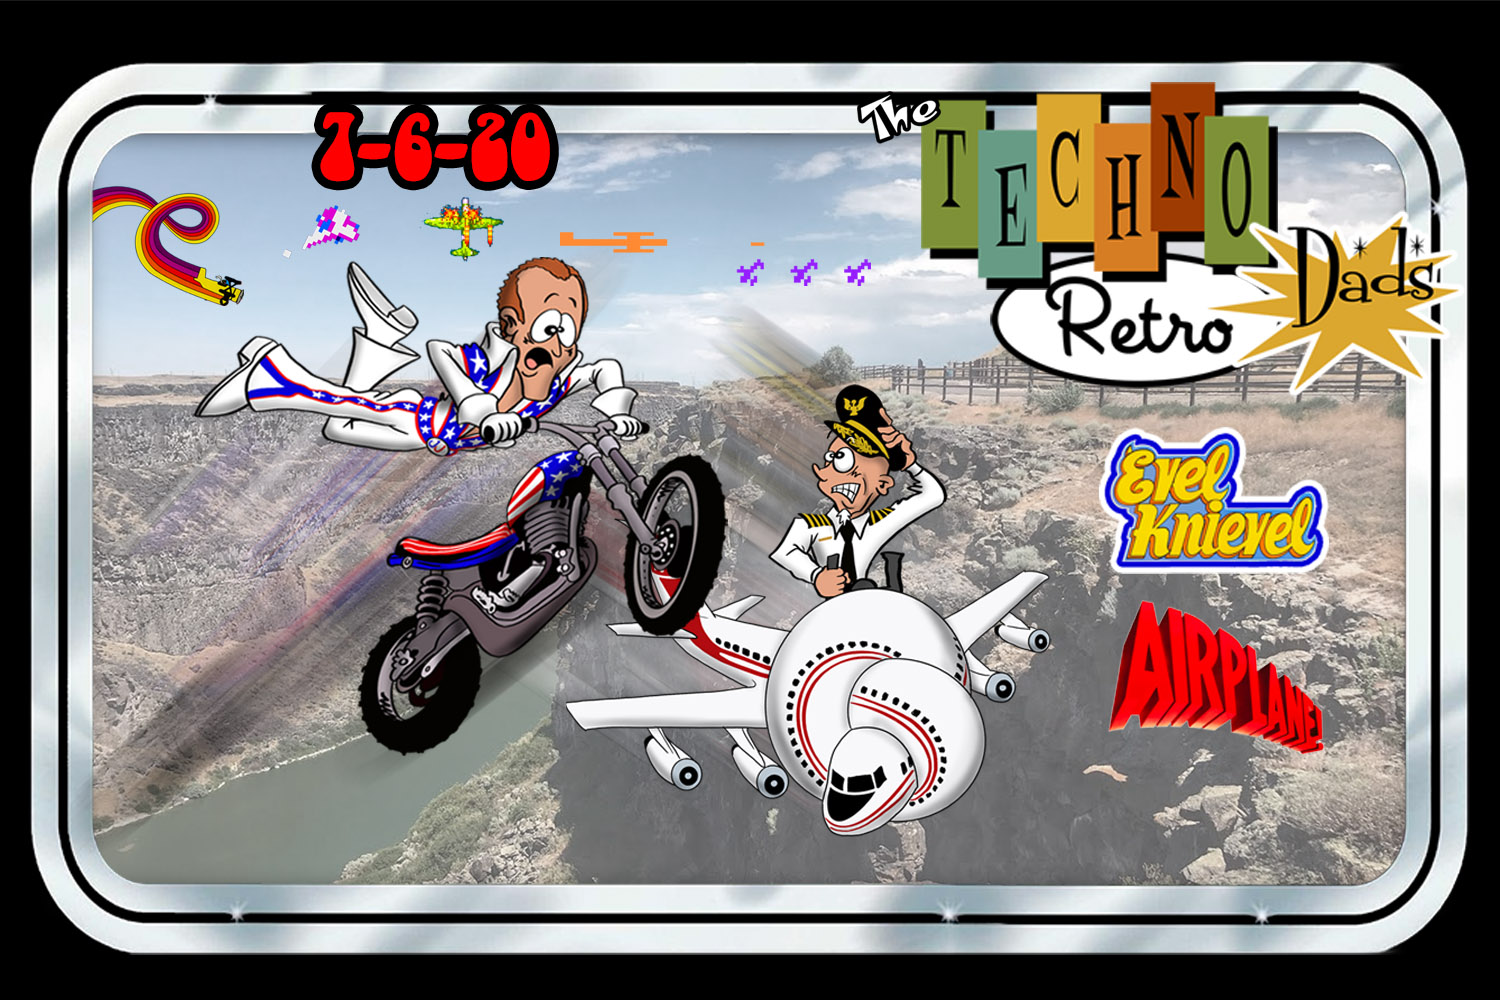 TechnoRetro Dads: Shirley you can't be Evel Knievel